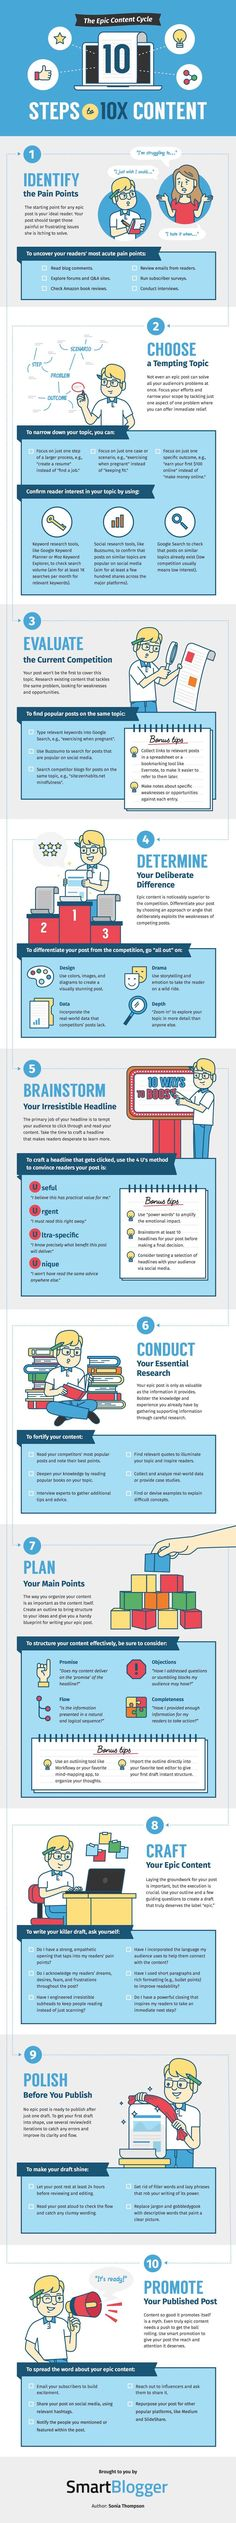 The Epic Content Cycle: 10 Steps to Content [Infographic] Marketing Trends, Marketing Tools, Internet Marketing, Online Marketing, Digital Marketing, Media Marketing, Inbound Marketing, Social Marketing, Facebook Marketing